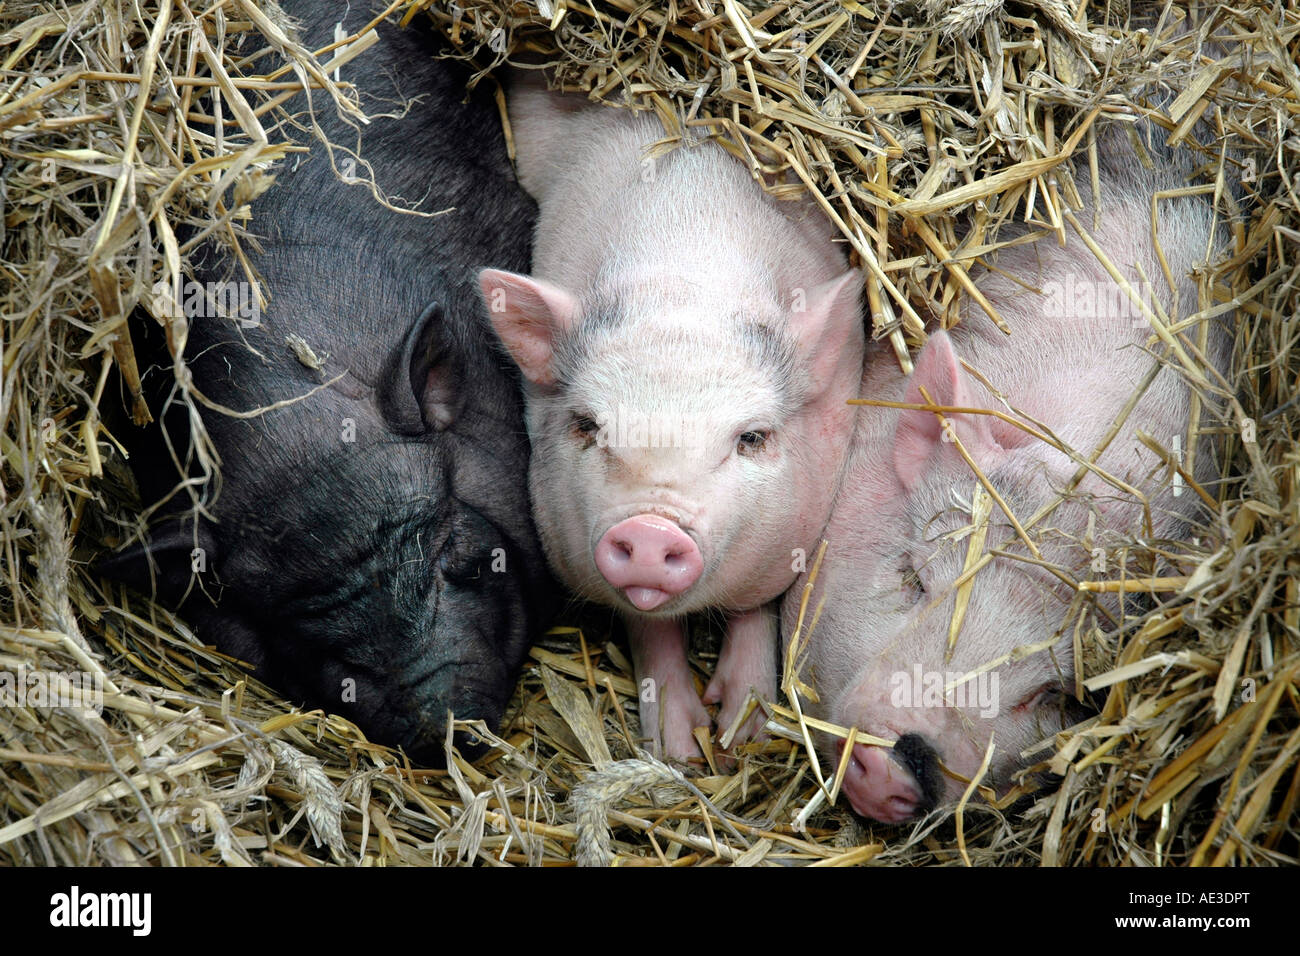 Three little pigs nestling in straw in the pigbreeding village of Trie sur Baïse in southwest France - Stock Image